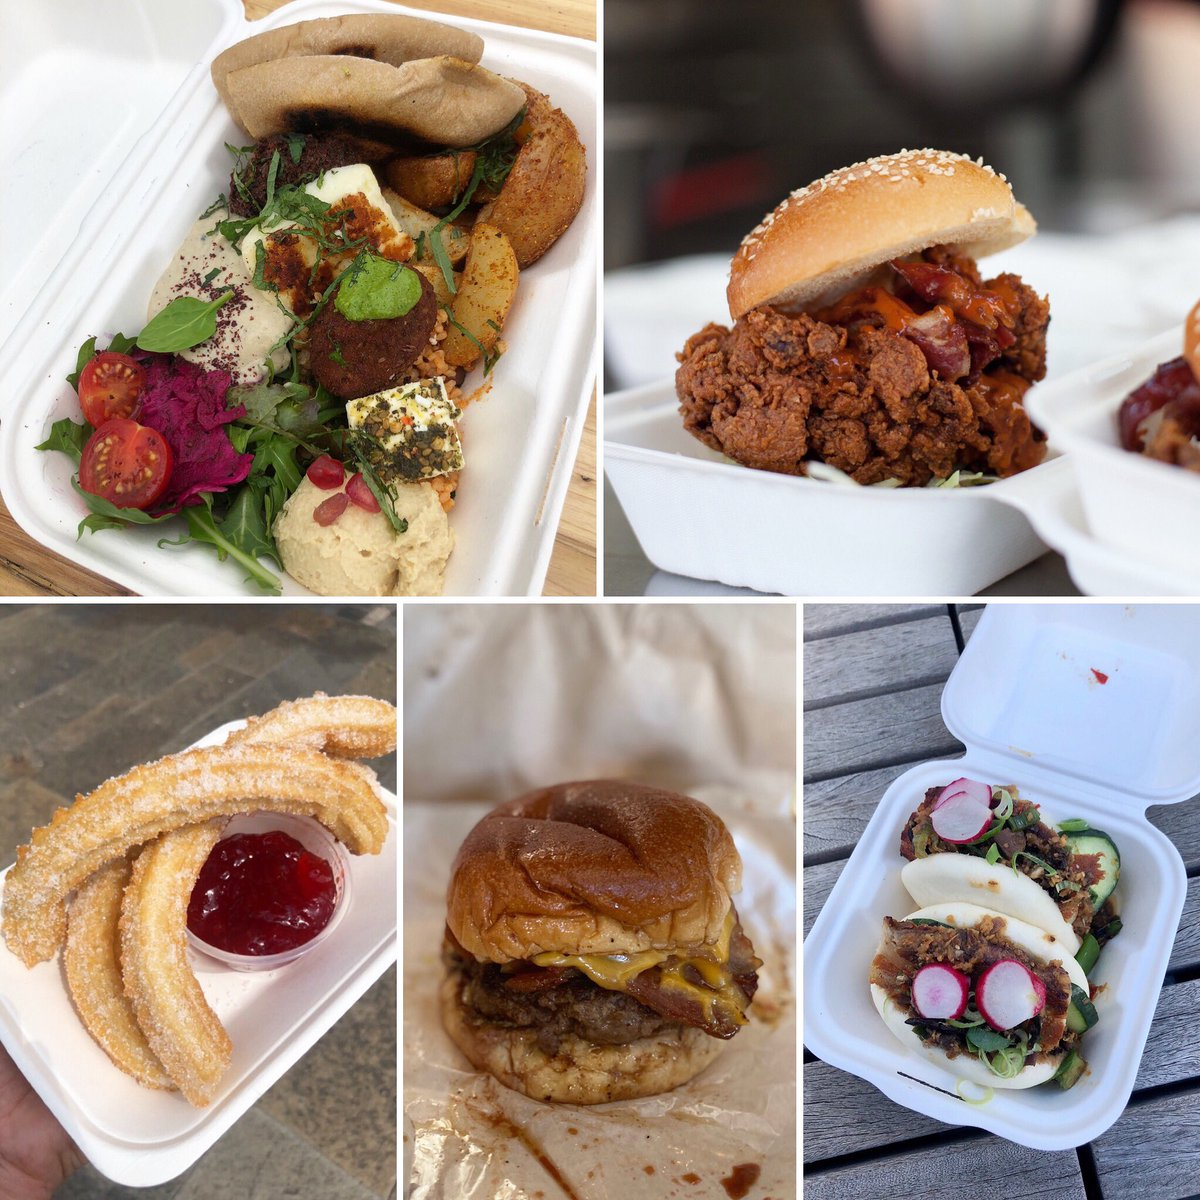 The big boys are in town this Thursday 24 September on #SaffronWalden Common, 5 'till 8pm. 🚚 #OTBT  🥟 @GuerrillaKitch (online orders LIVE)  🍗 @Buffalo__joes  (walk-ups)   🍔 @steakandhonour (online orders LIVE)  🌈 @Wanderingyak (walk-ups)   🍭 @churros_bar (walk-ups) https://t.co/QLcdPyP3Ns